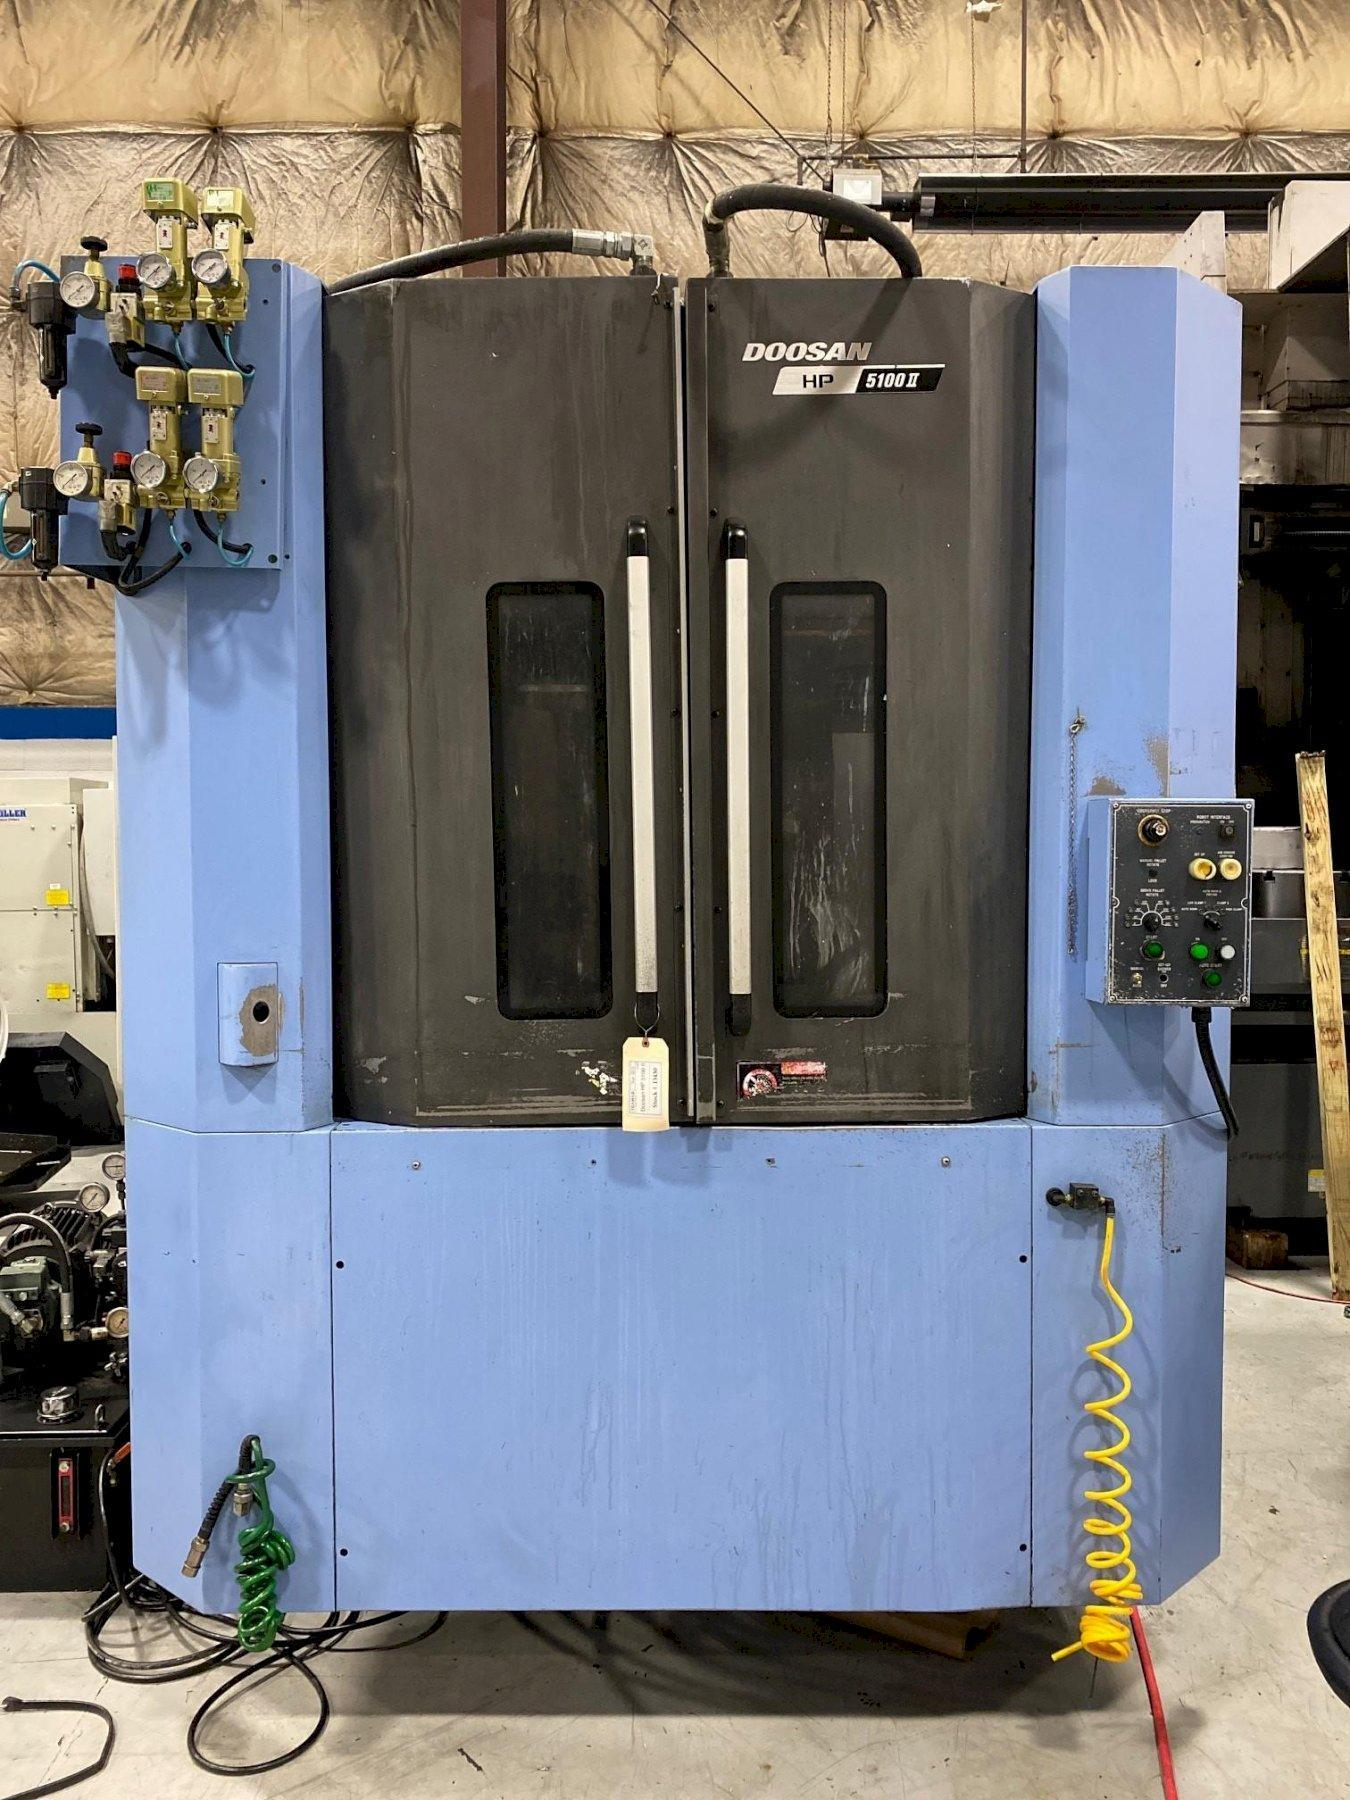 """Doosan HP5100II CNC Horizontal Machining Center, Fanuc 31iA, 19.7"""" Pallets, HSK63, 14K Spindle, CTS, 30 HP, Hyd Clamping, 60 ATC, Chiller, Full 4th, 2015 (3 Available)"""